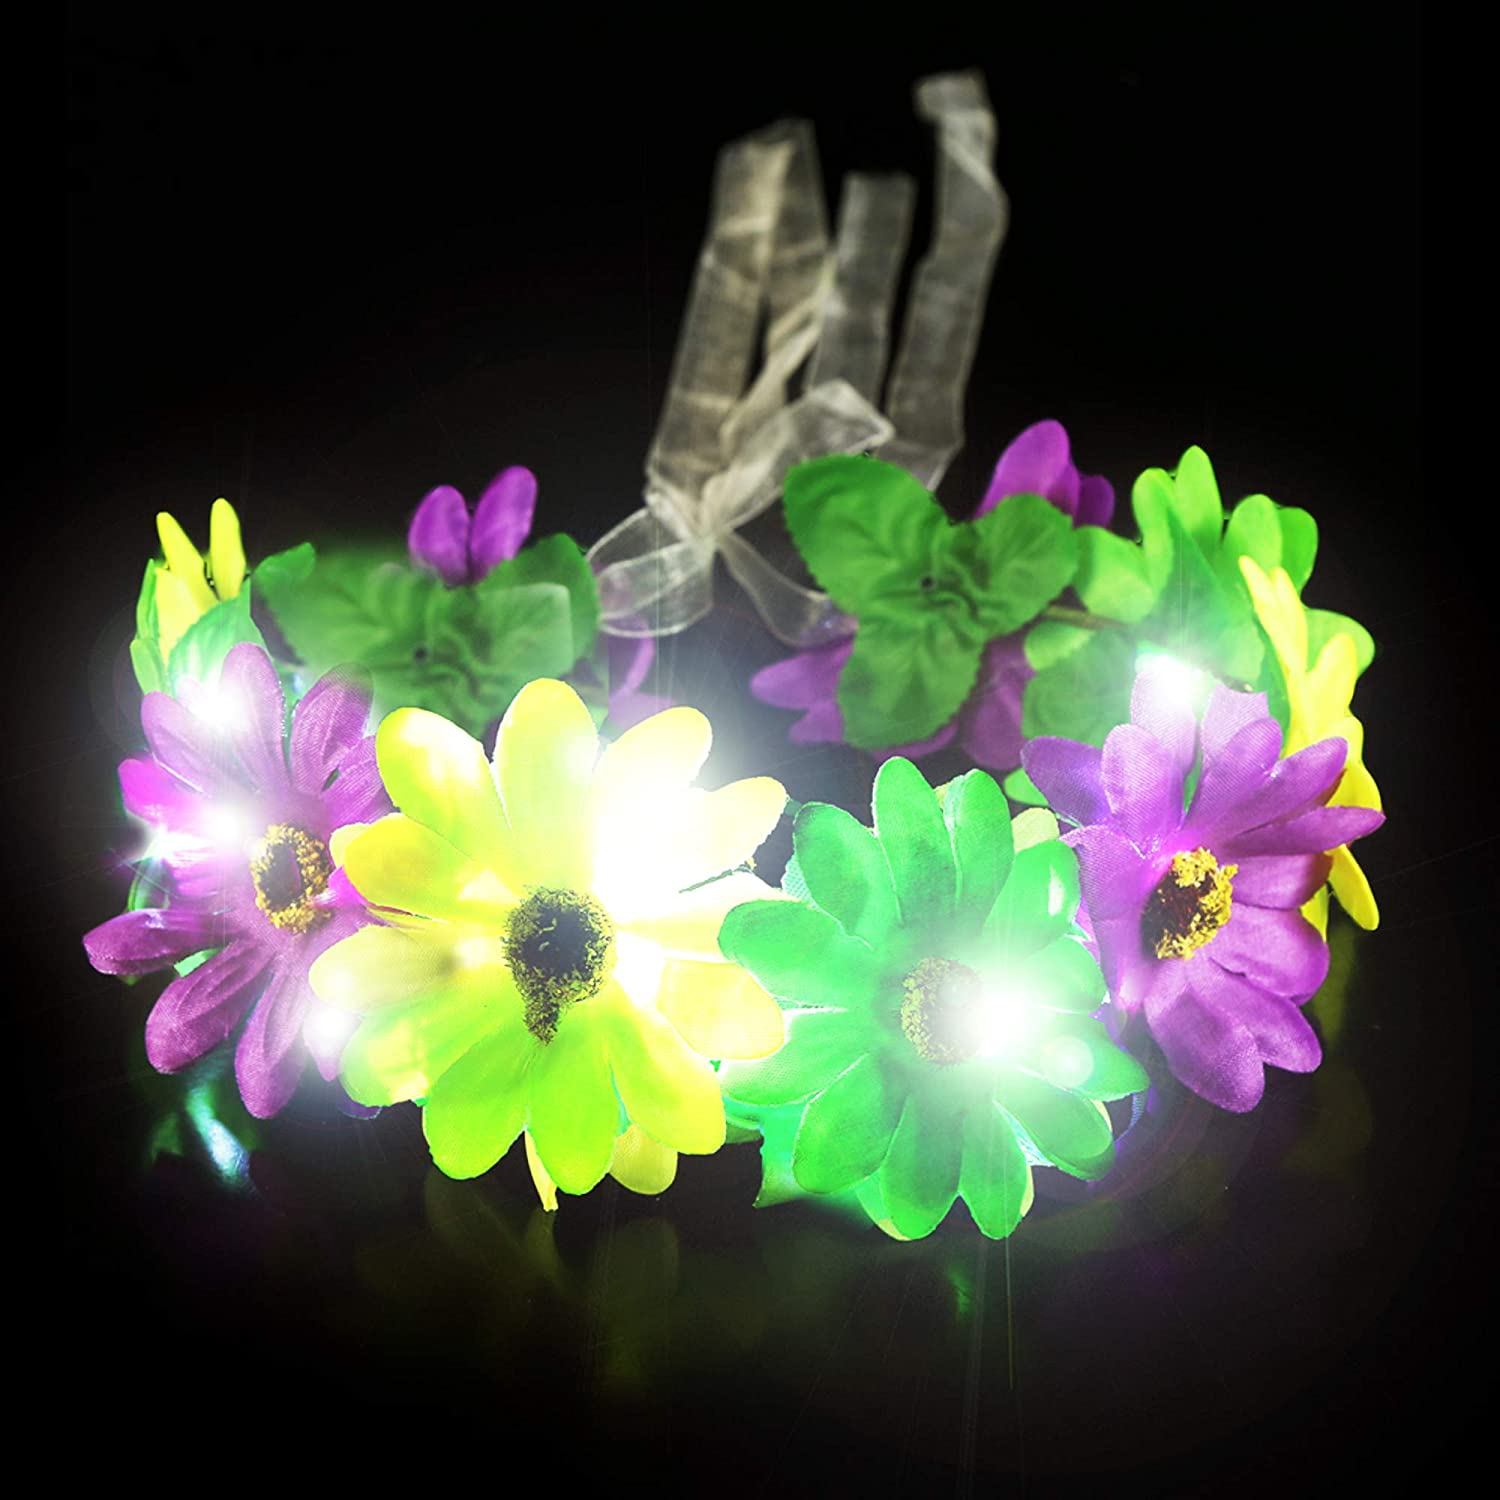 Girl's Hair Accessories New Fashion New Novelty Led Flashing Flower Headband Hair Ornament Hairband Glowing Light Floral Wreath Children Girls Toys Christmas Party